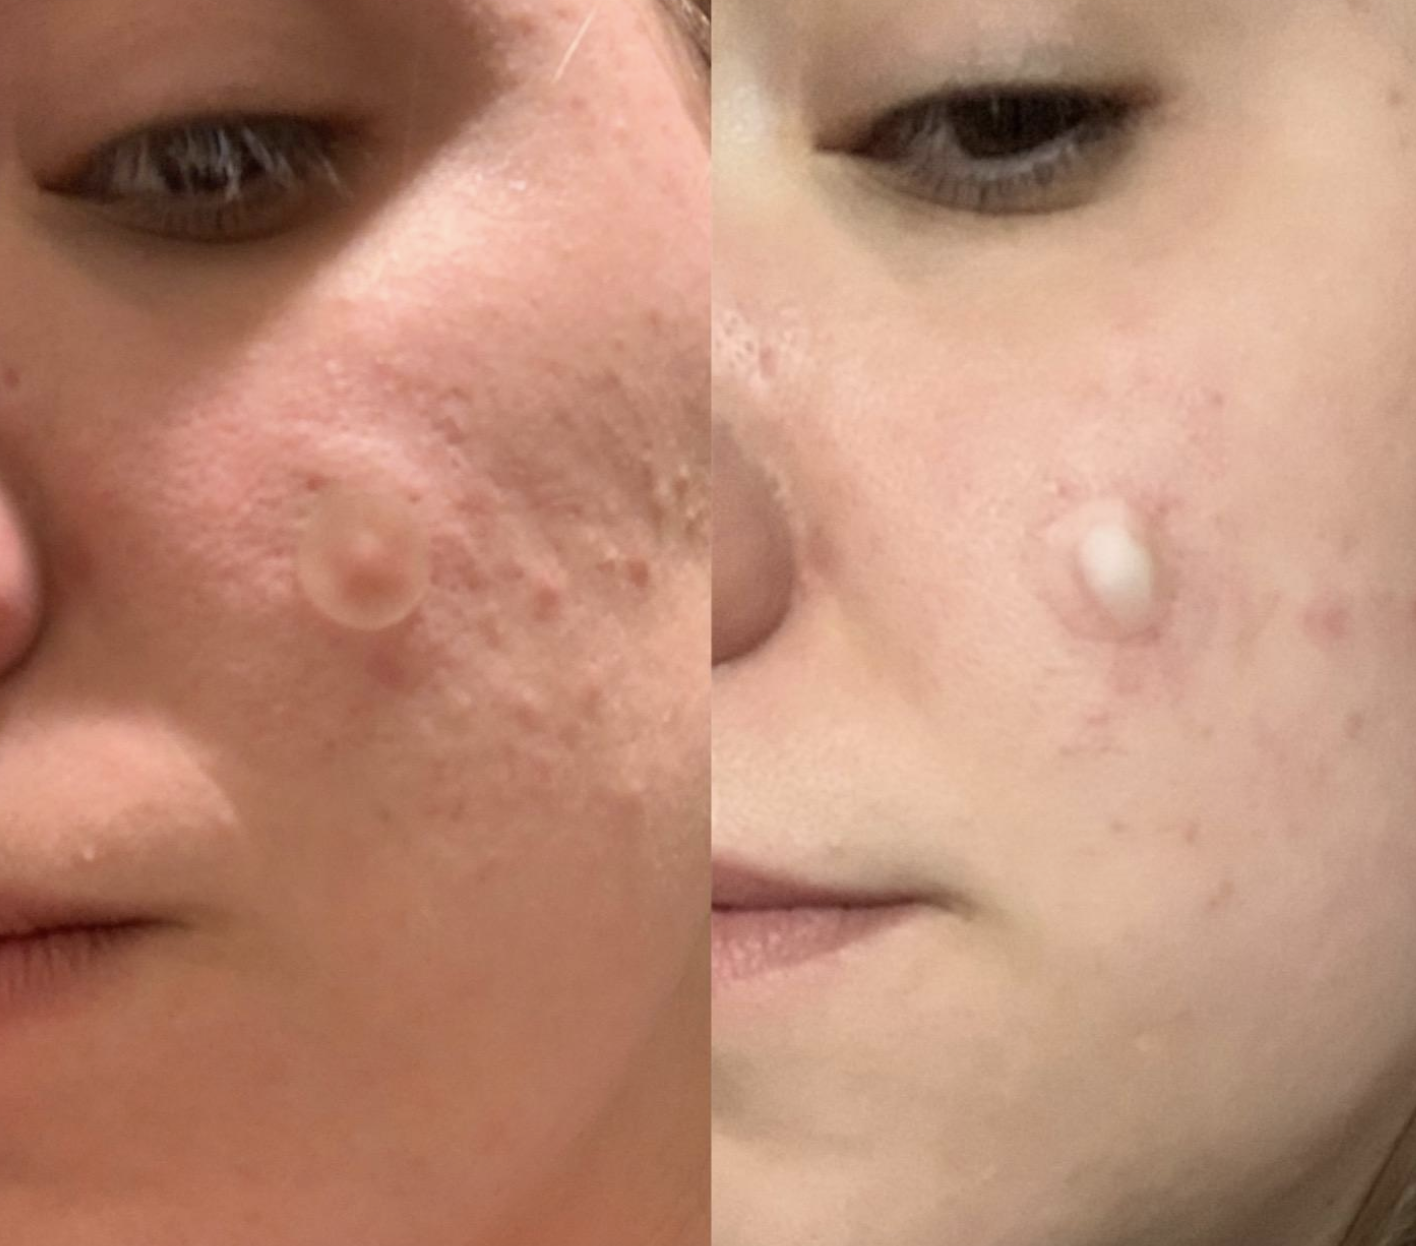 on left, reviewer wearing clear patch over a pimple and on right, the pimple looking ready to pop